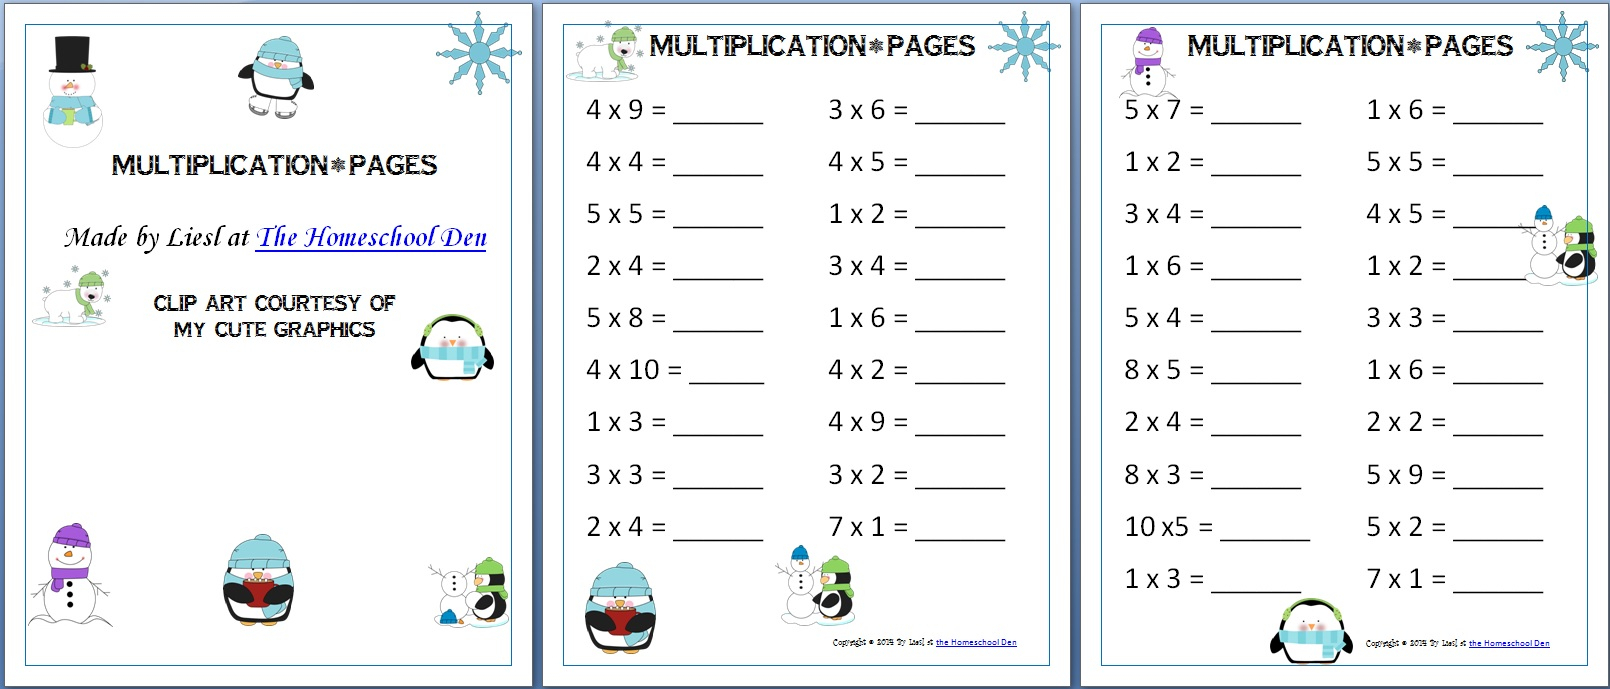 Winter Themed Multiplication Pages - Homeschool with Homeschool Multiplication Worksheets